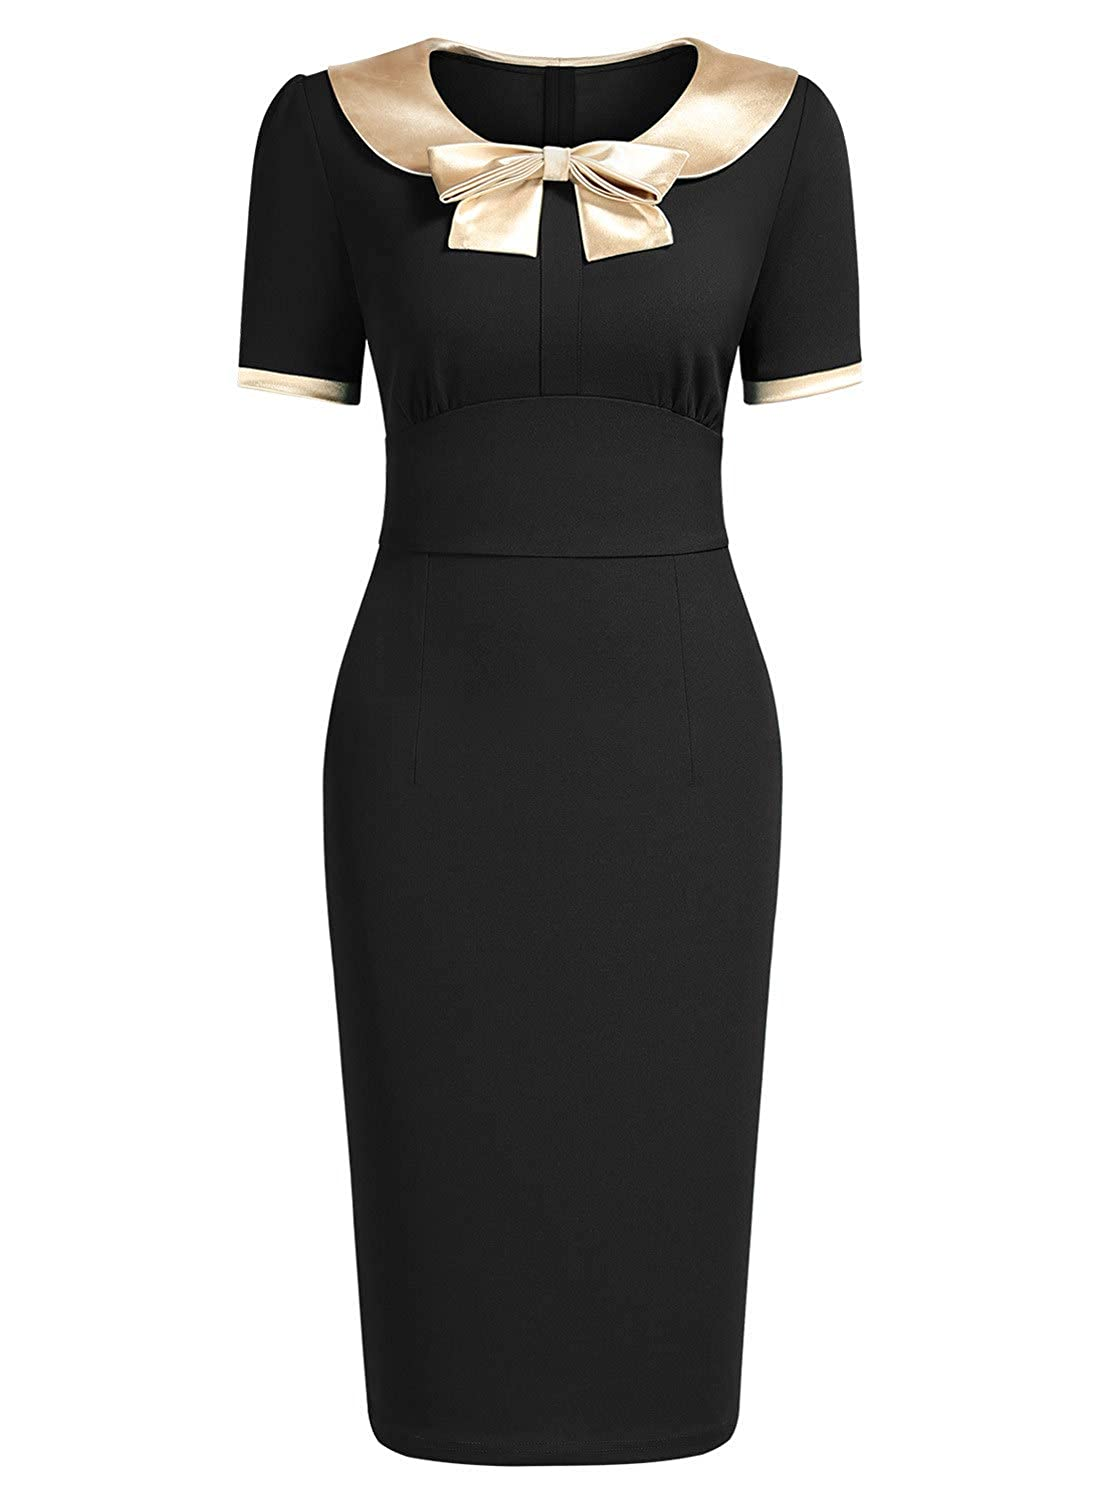 1950s Pencil Dresses & Wiggle Dress Styles AISIZE Womens 1940s Style Vintage Golden Bow Contrast Color Wiggle Dress $34.99 AT vintagedancer.com